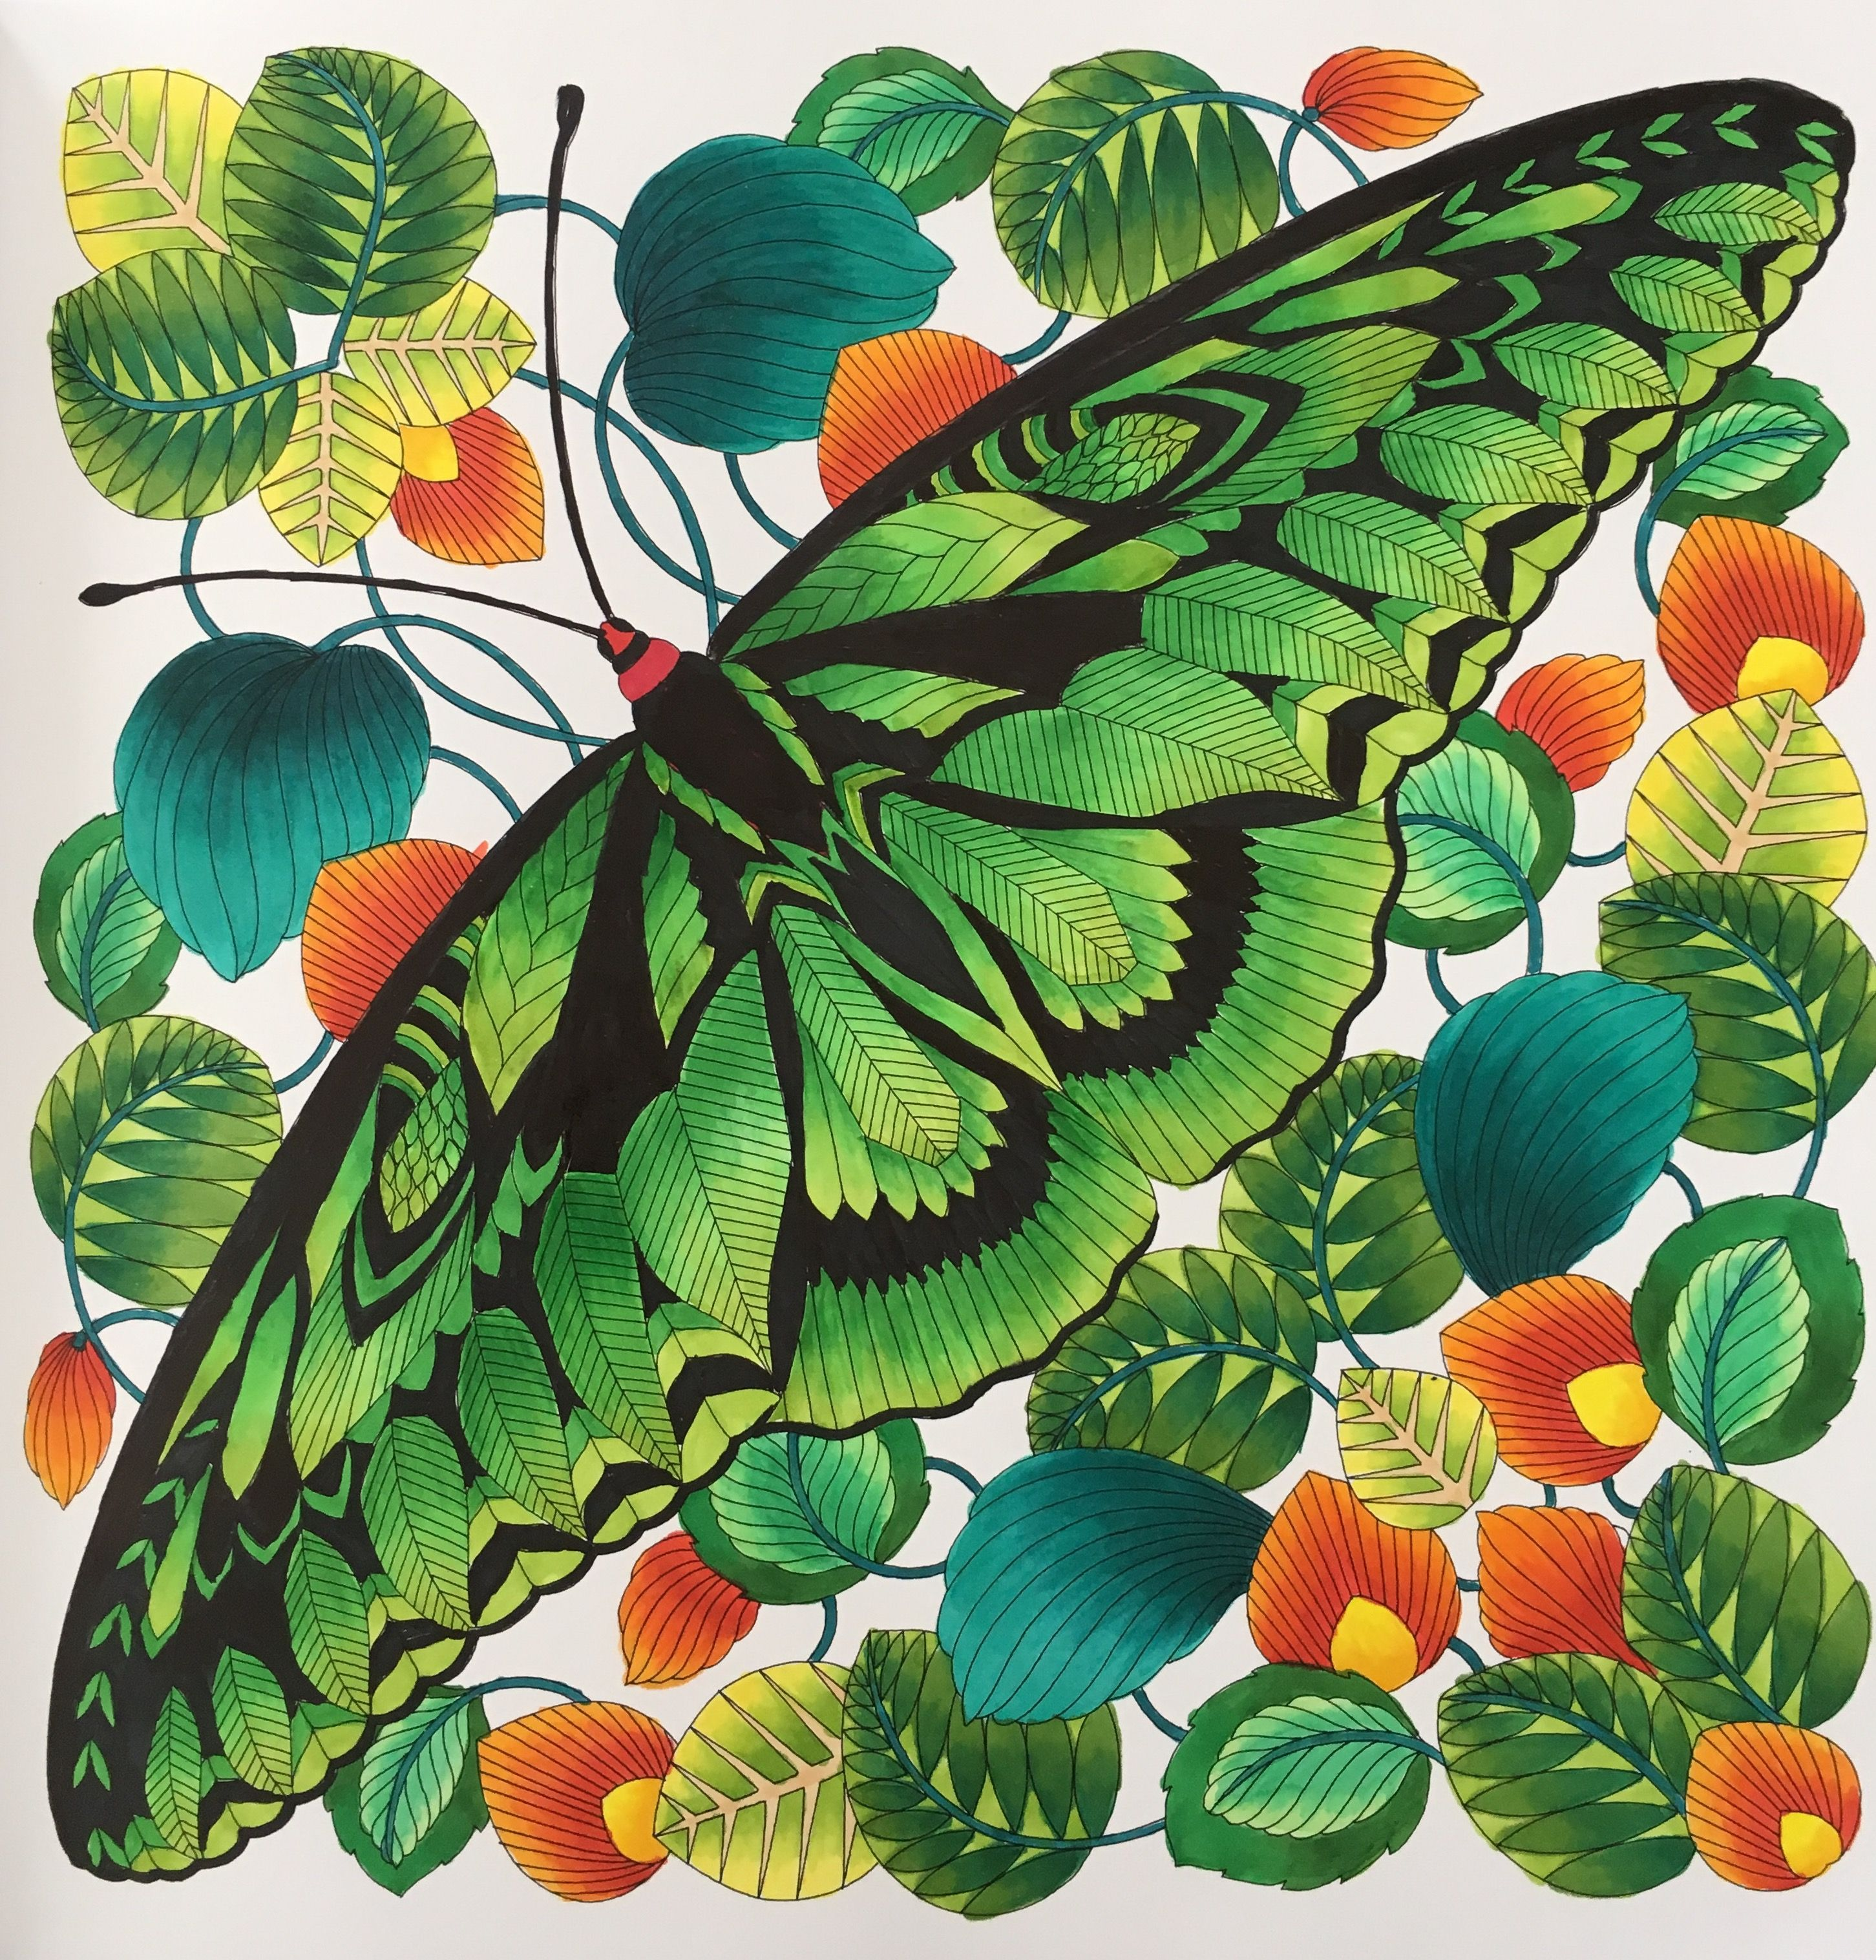 Rajah Brookes Birdwing Butterfly From Millie Marottas Curious Creatures Using Copic Markers